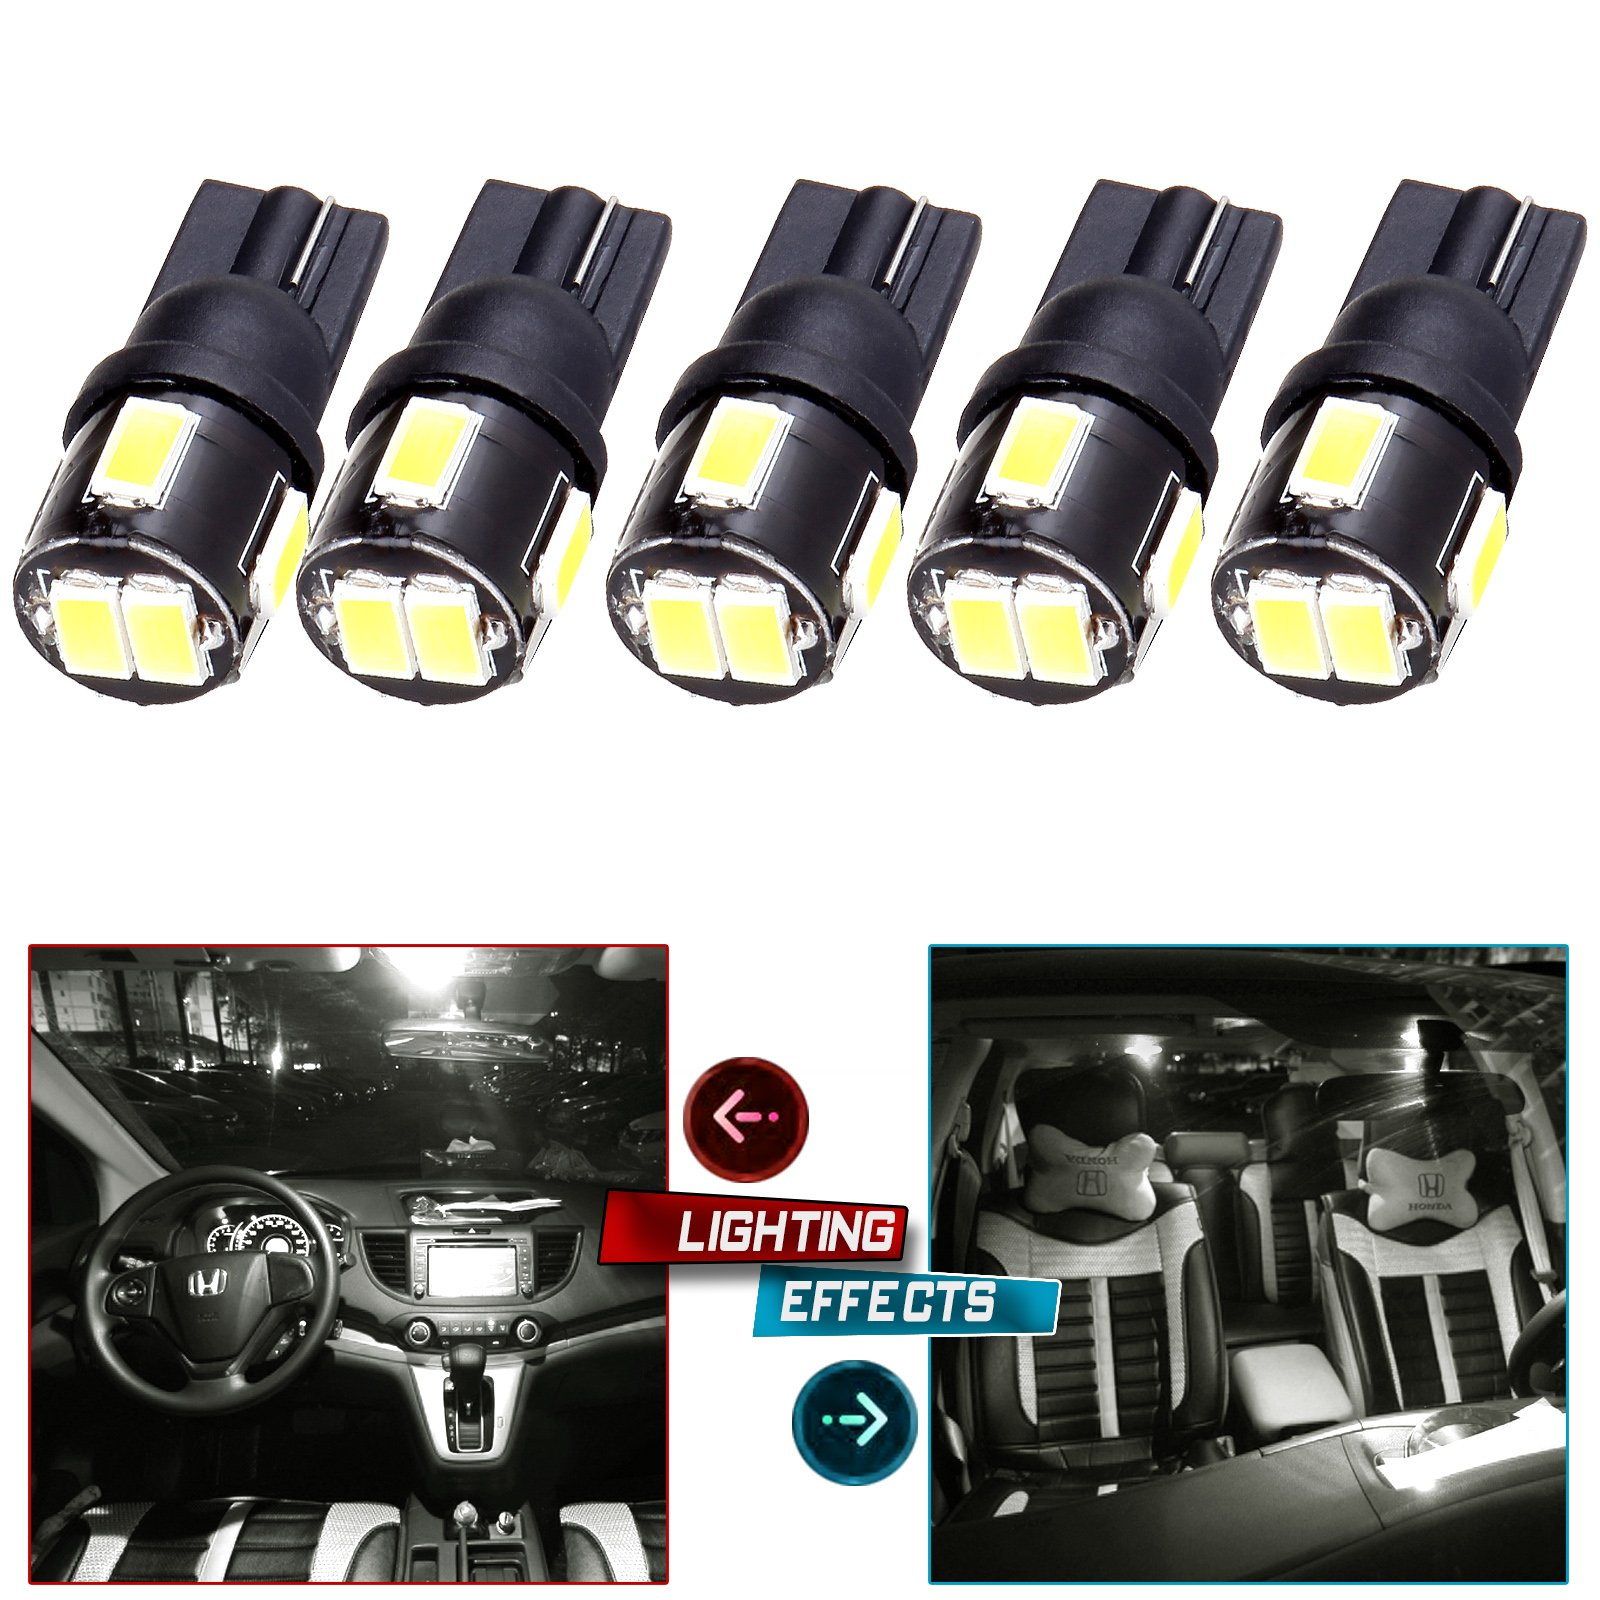 cciyu 194 Extremely Bright LED Bulbs T10-6-5730-SMD fit for Interior Lights Map Light Step/Courtesy/Door Light Glove Box LightInstrument Panel Light Wedge T10 168 2825 W5W White Bulbs Pack of 5